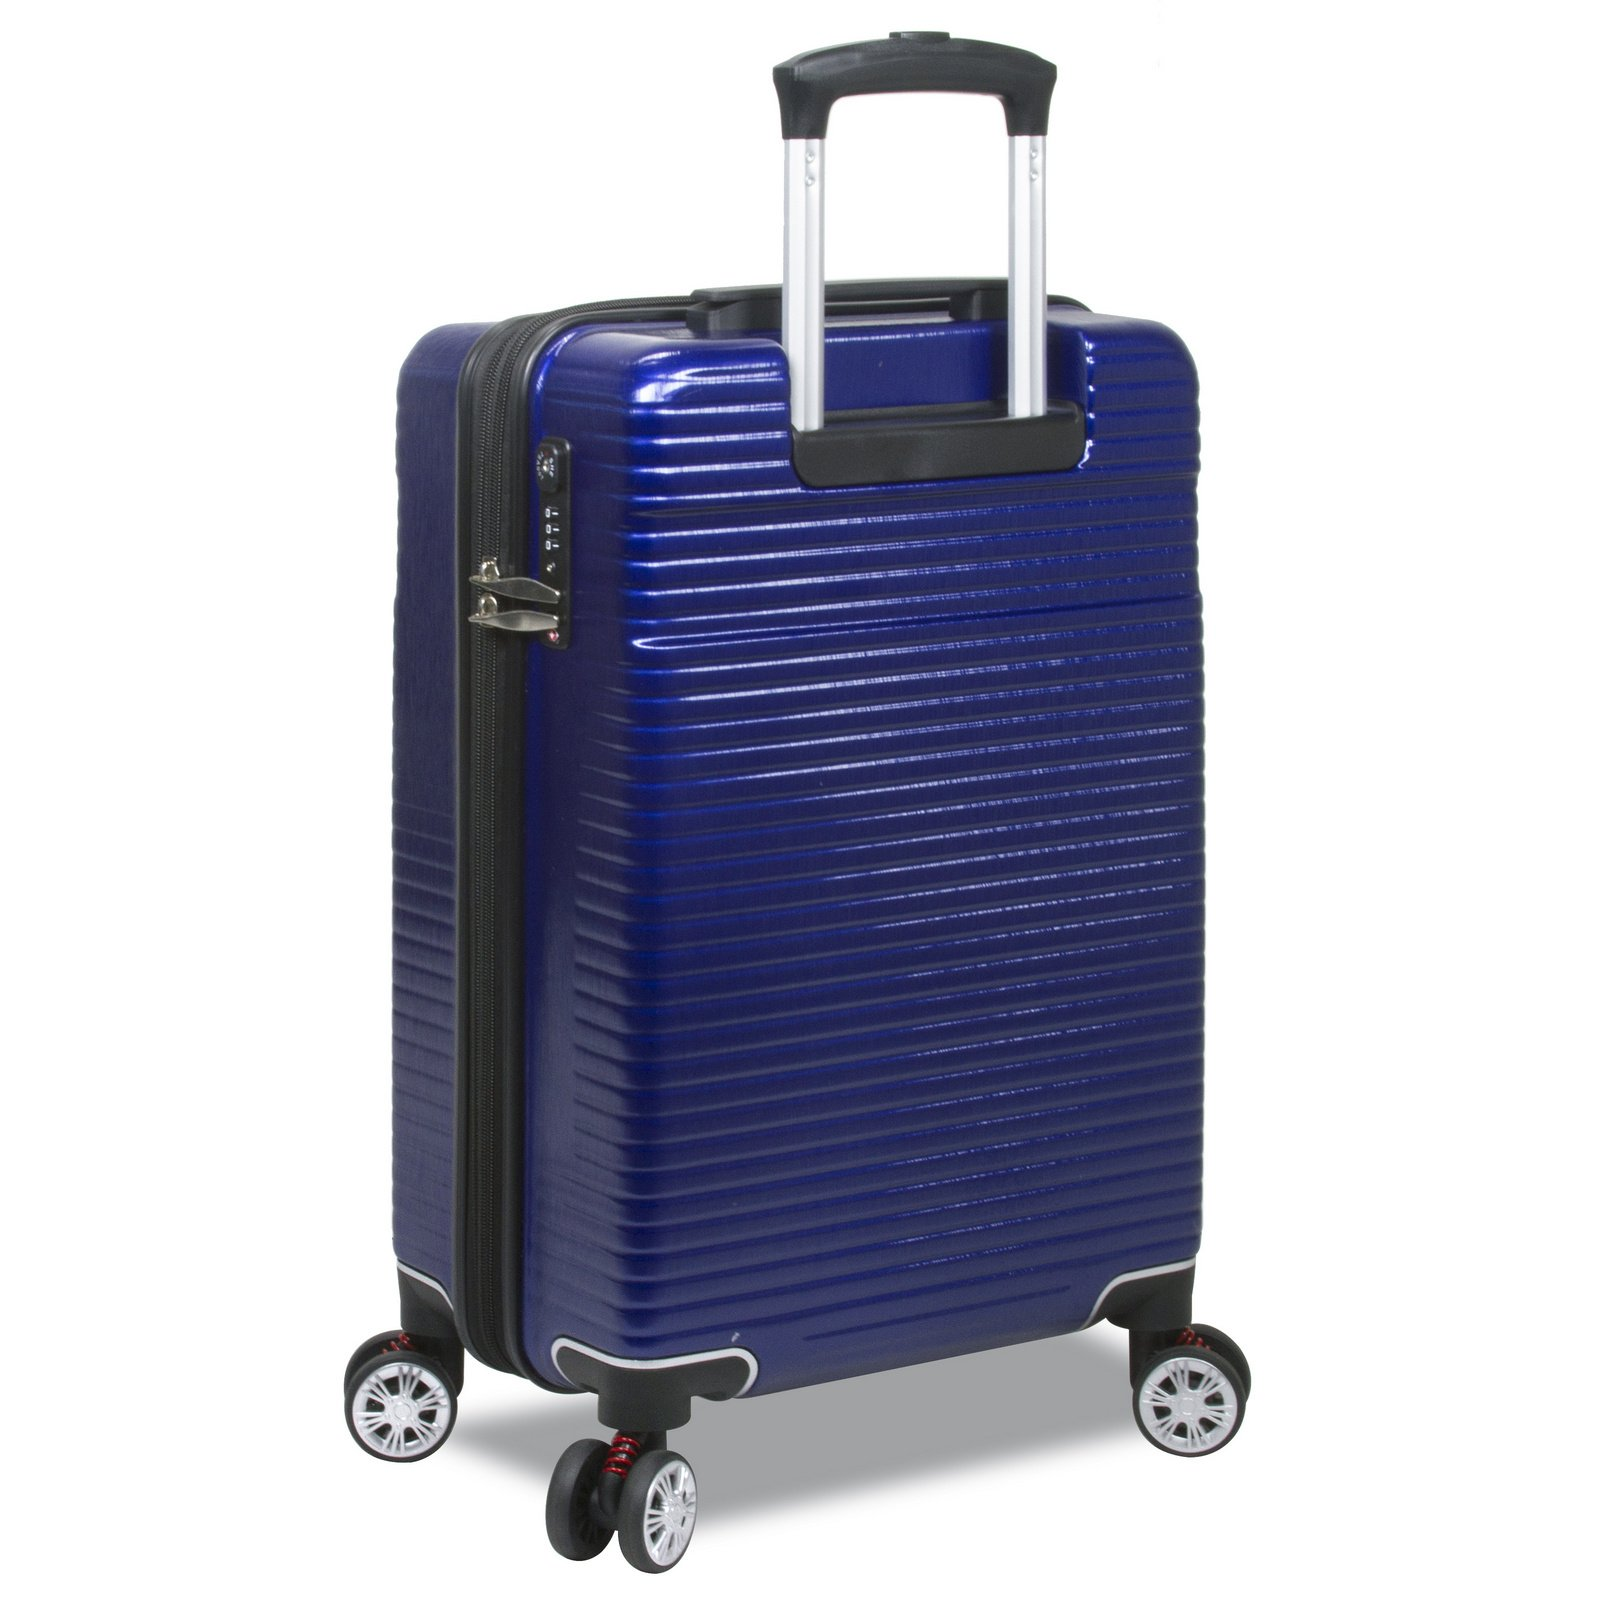 Dejuno Ashford 3-PC Hardside Spinner TSA Combination Lock Luggage Set - Navy by Dejuno (Image #3)